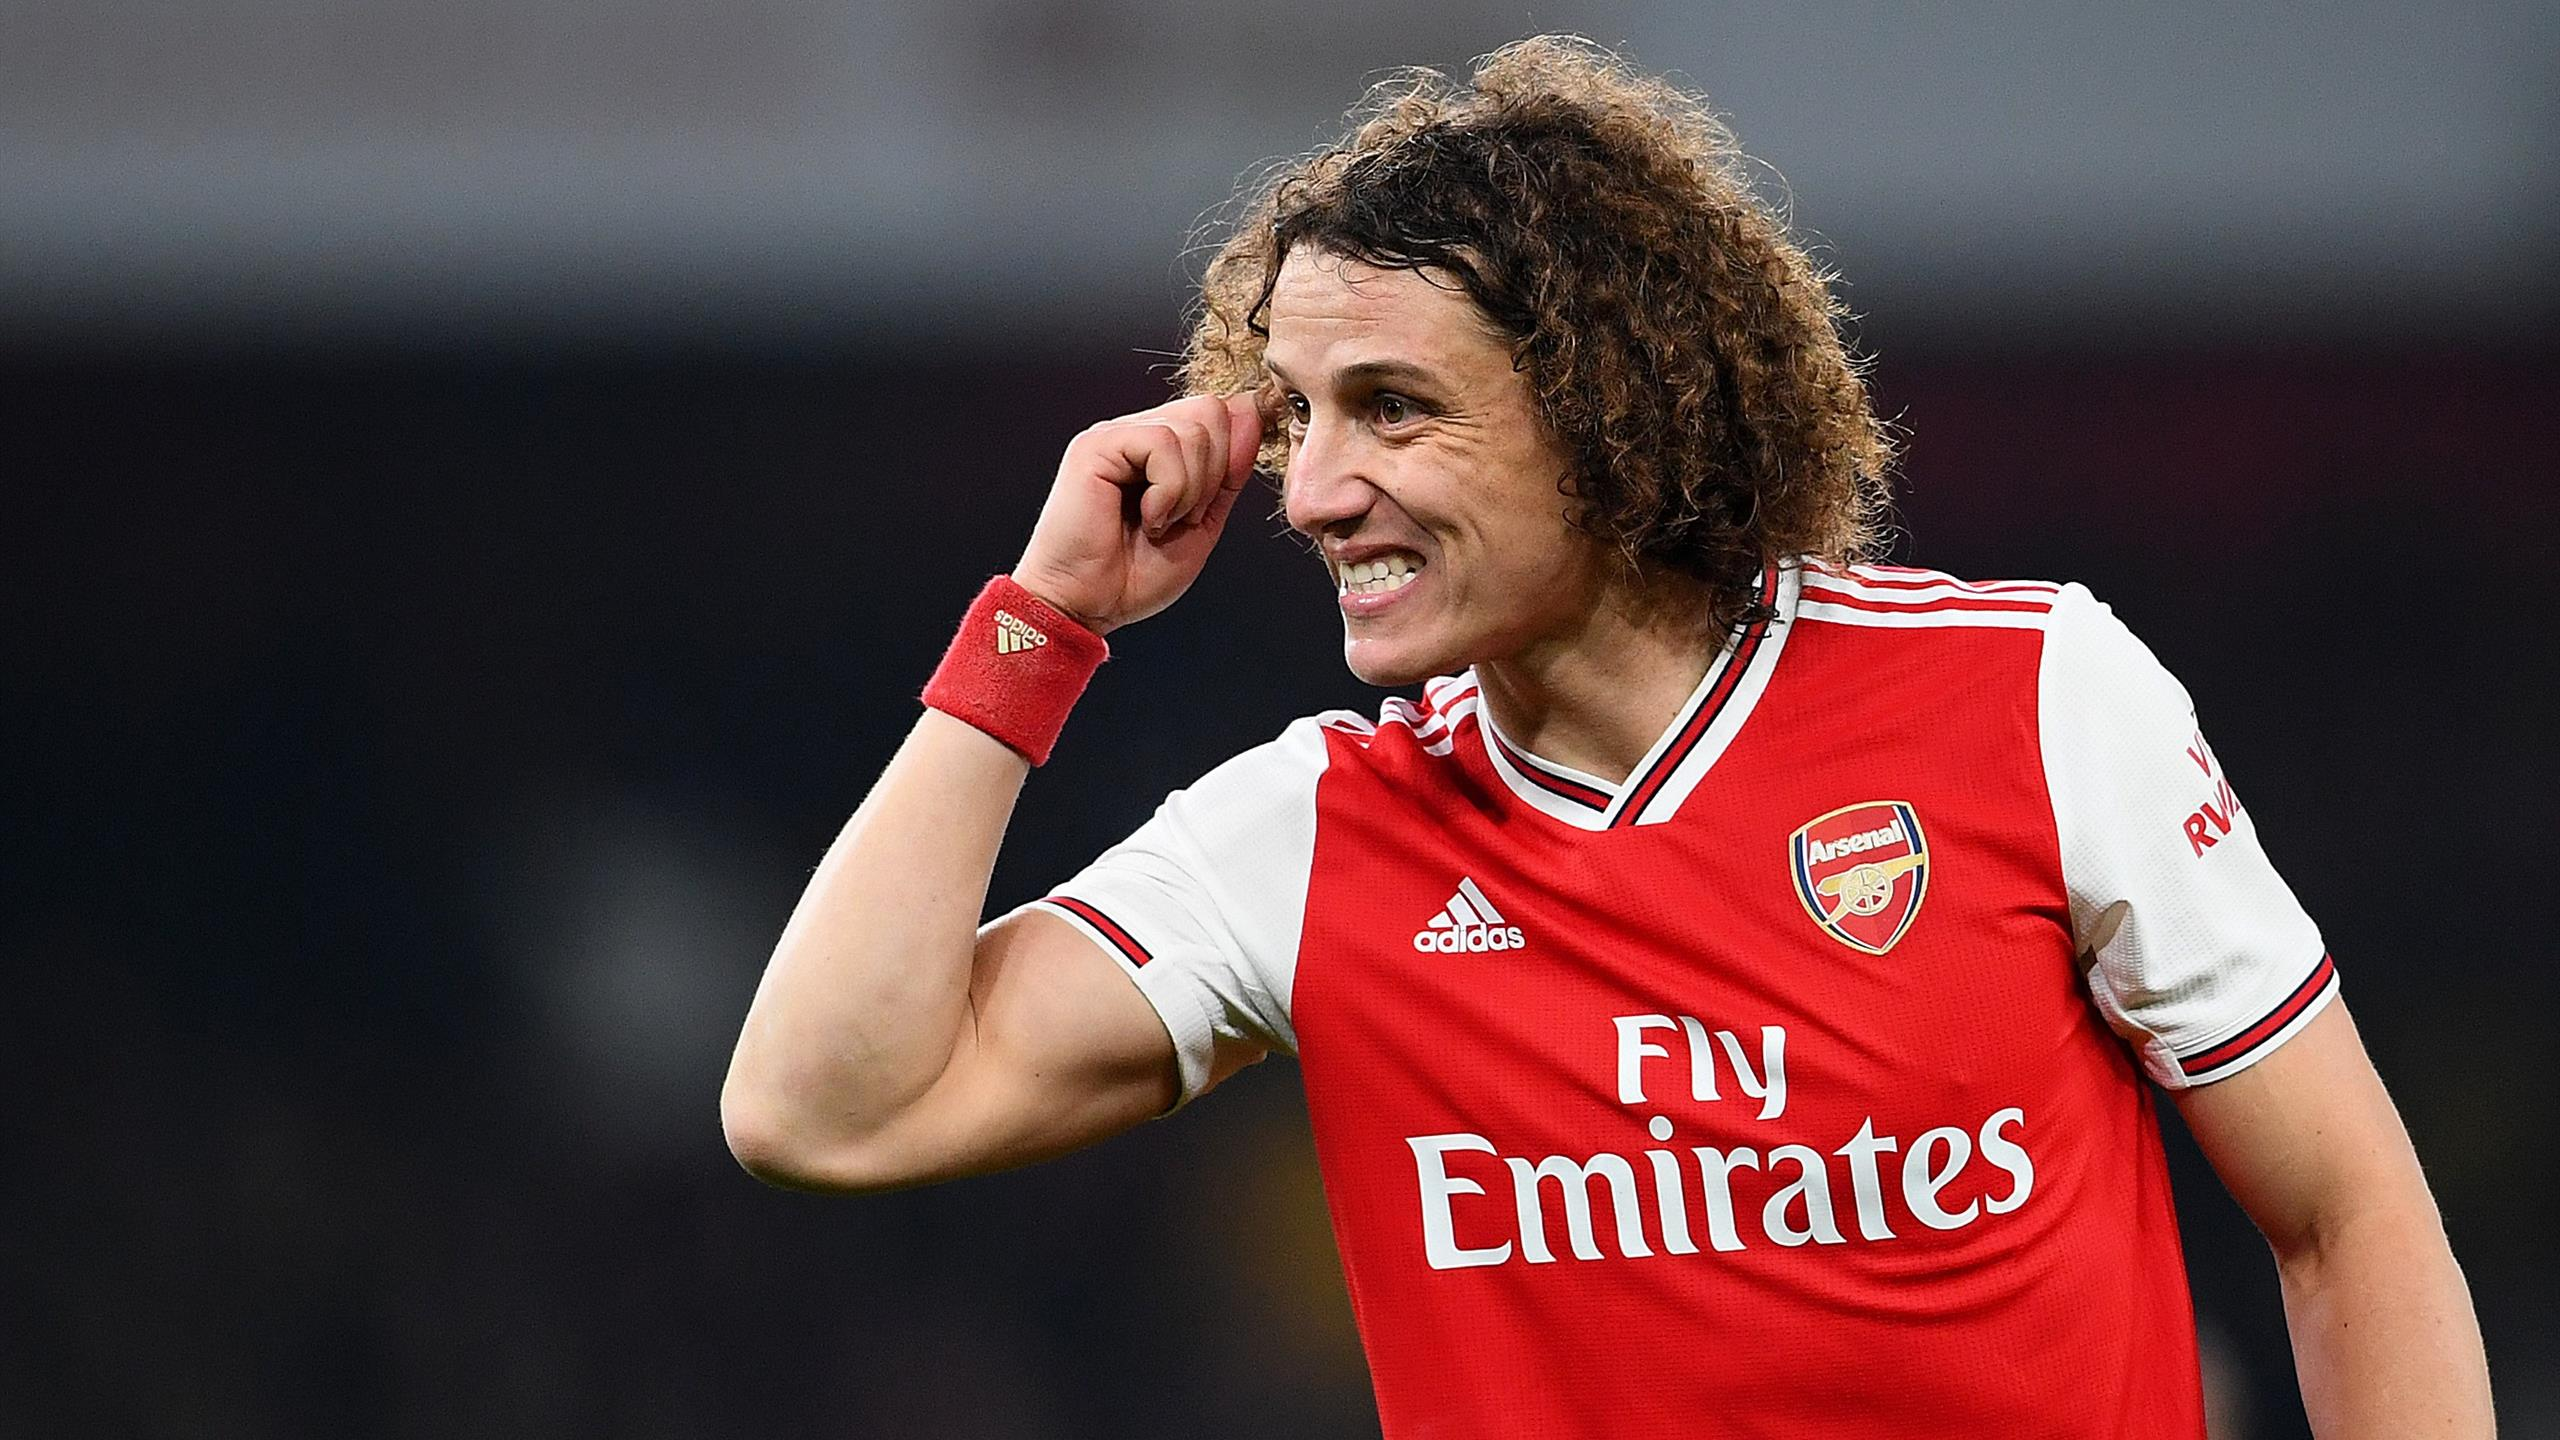 Football news - David Luiz: Chelsea staff begged me to stay after I joined  Arsenal - Eurosport